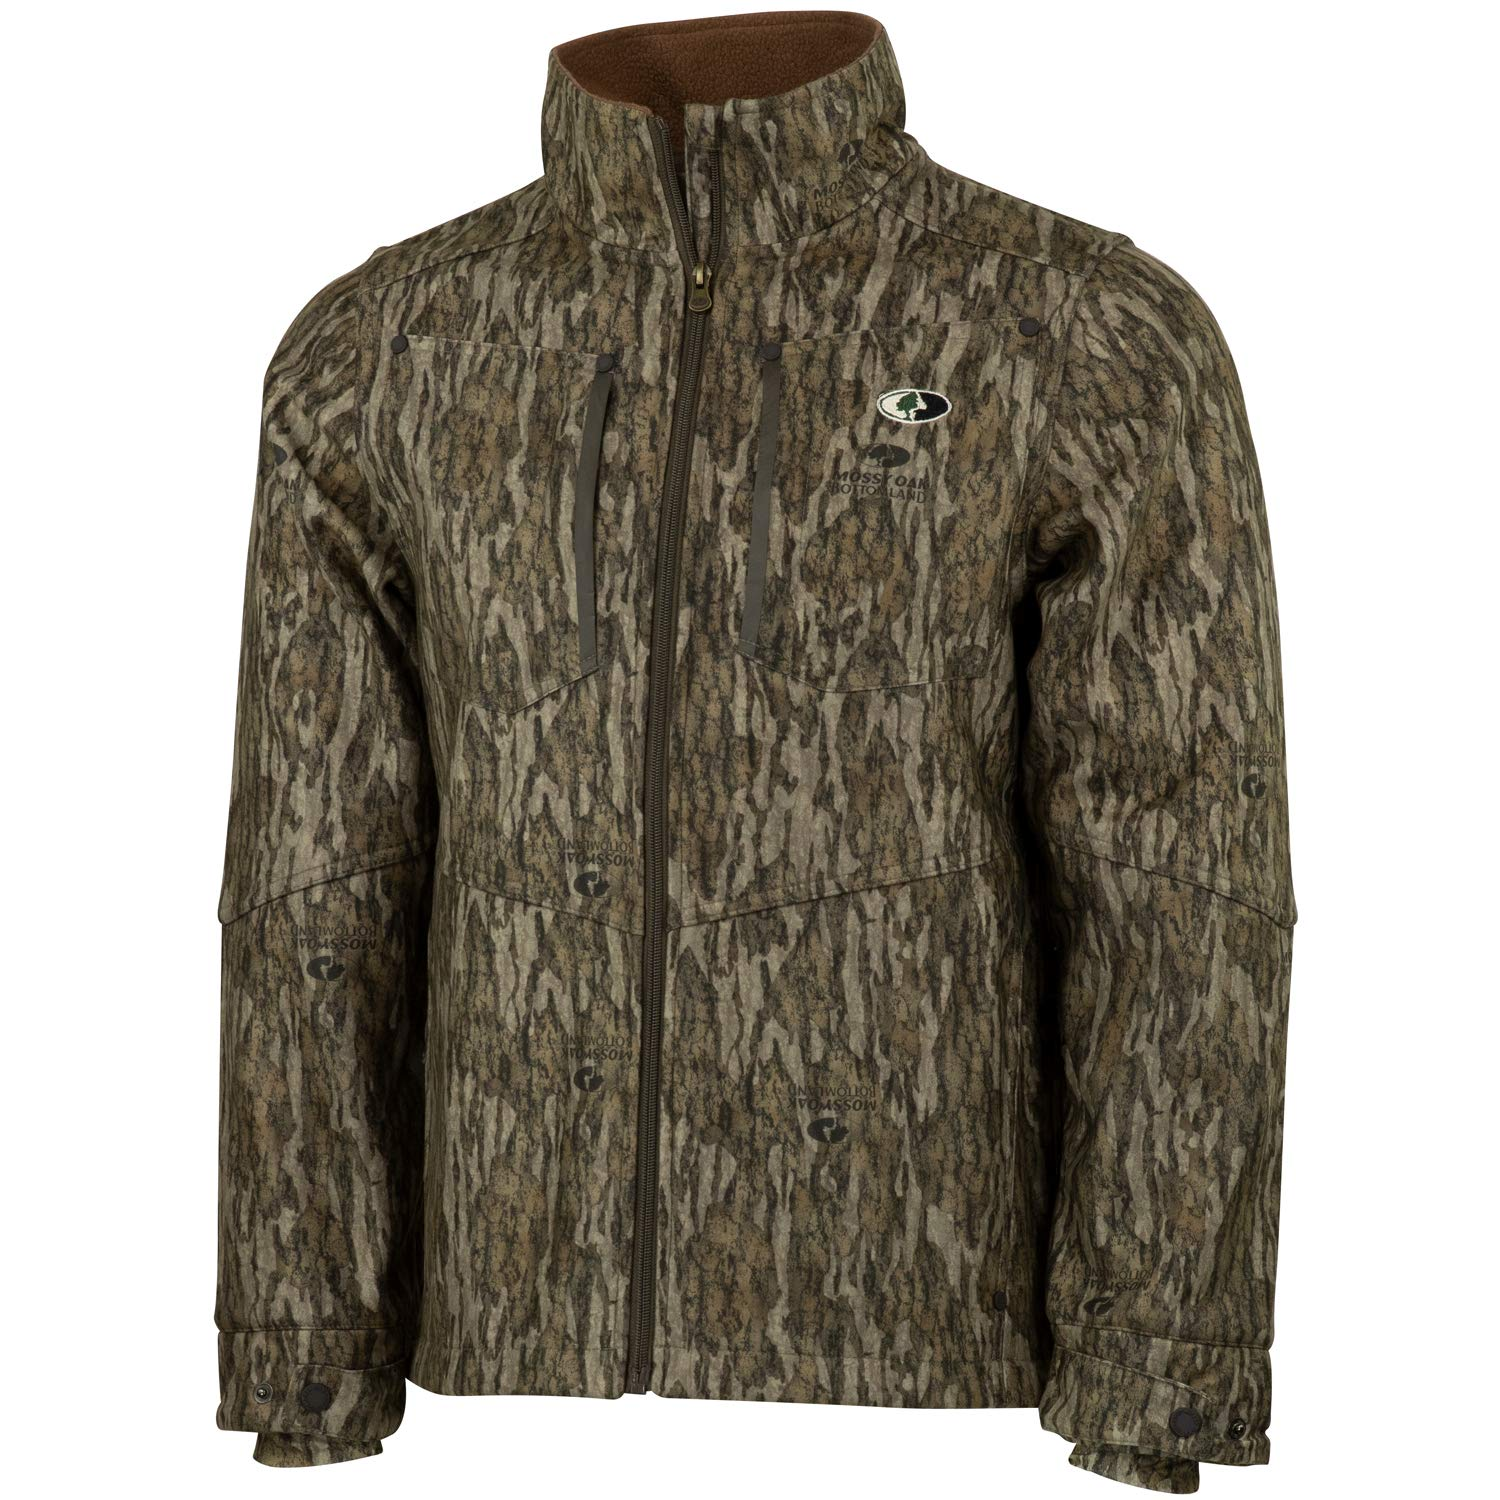 Mossy Oak Men's Camo Sherpa 2.0 Fleece Lined Hunting Jacket Huntworth Men's Light Weight 1/4 Zip Shirt Huntworth Men's Heavy Weight Soft Shell Jacket ScentLok Men's Savanna Crosshair Jacket NEW VIEW Hunting Jackets Waterproof Hunting Camouflage Hoodie for Men,Camo Jackets and Tactical Camouflage Pants HUNTSHIELD Women's Lightweight Hunting Jacket | Realtree MAX-1 XT Camo | Water Resistant